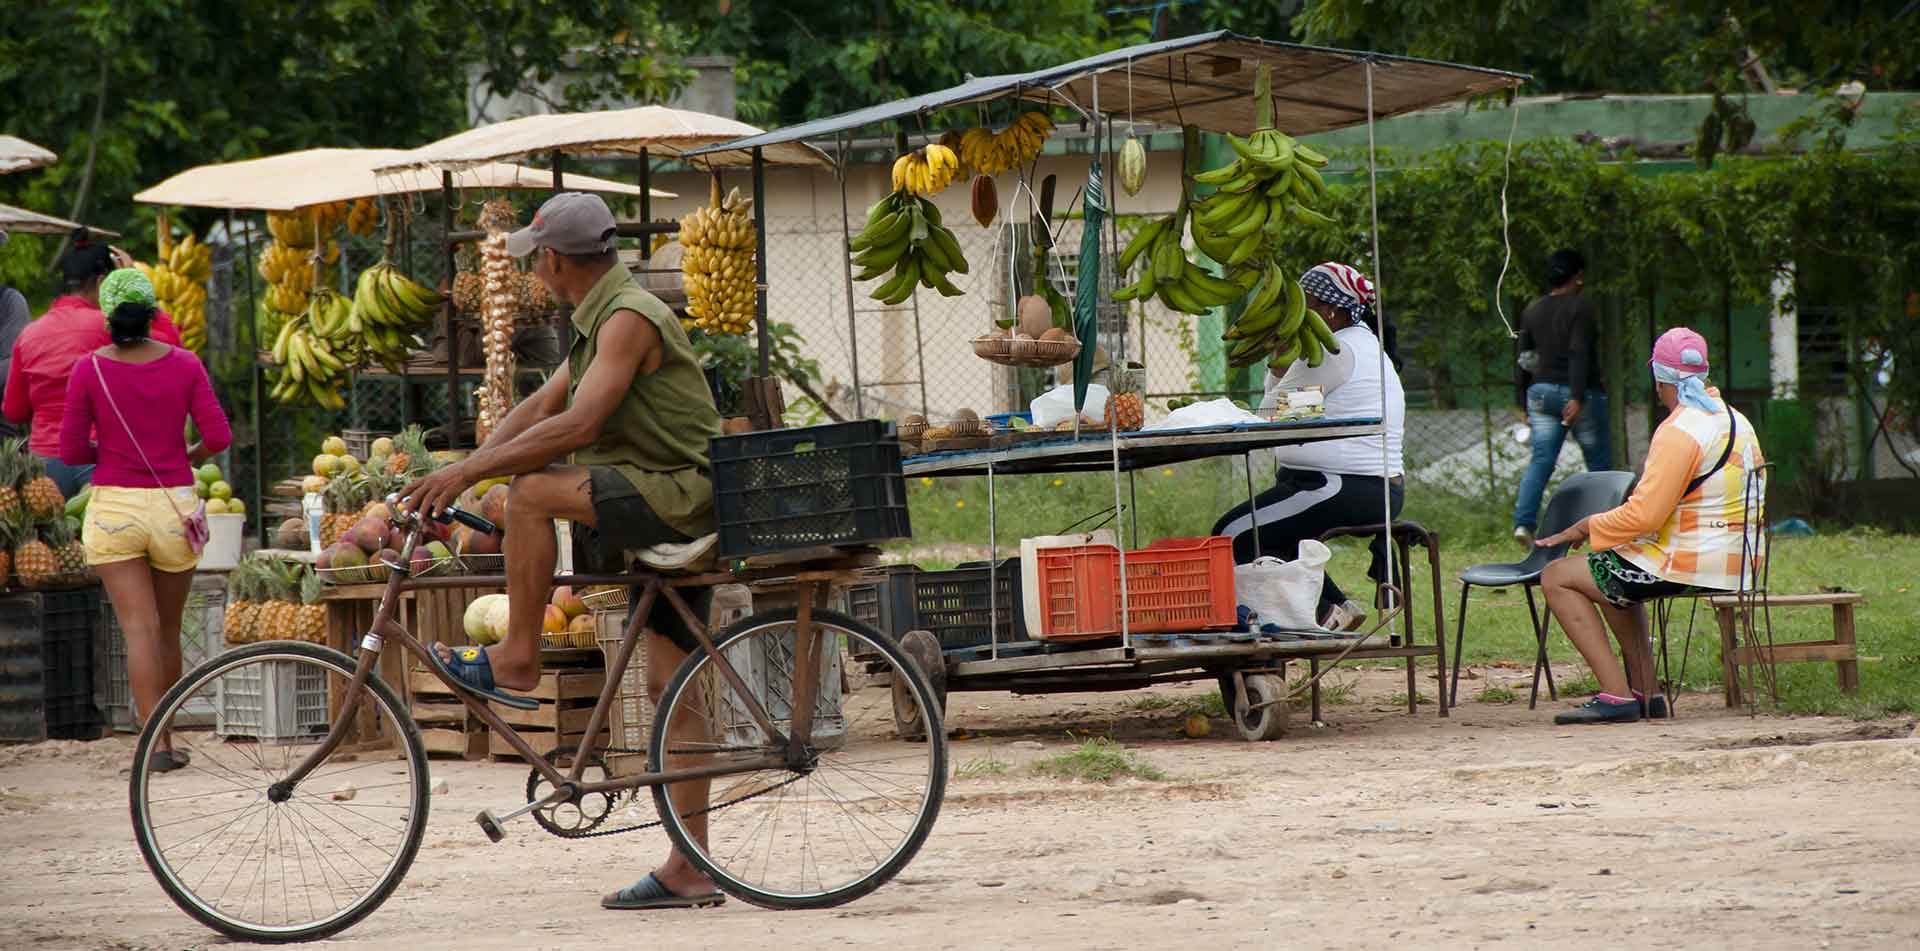 North America Caribbean Cuba local street market produce natural organic bike cycling - luxury vacation destinations